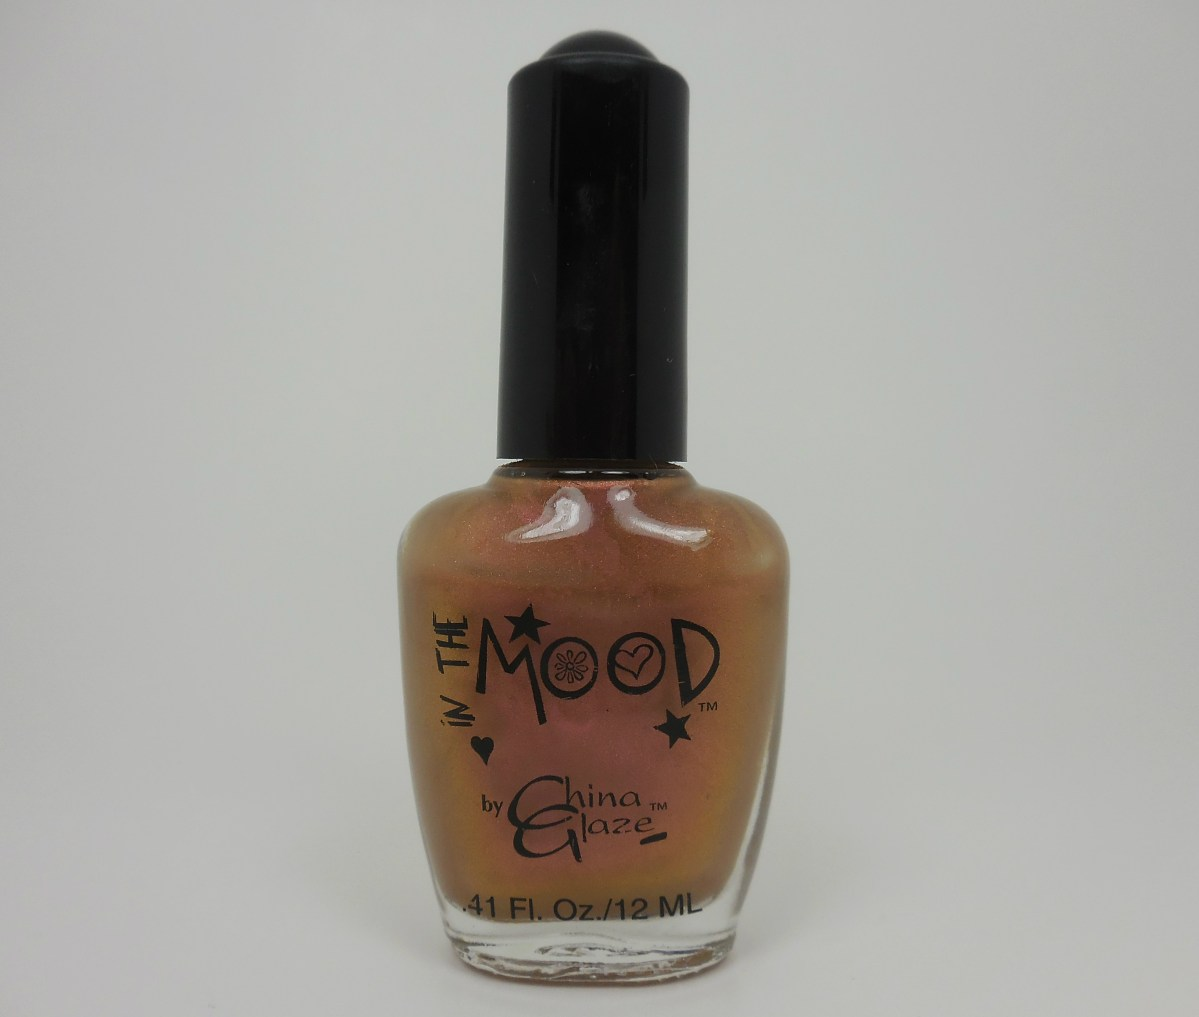 China Glaze In The Mood - #vintagepolishfriday